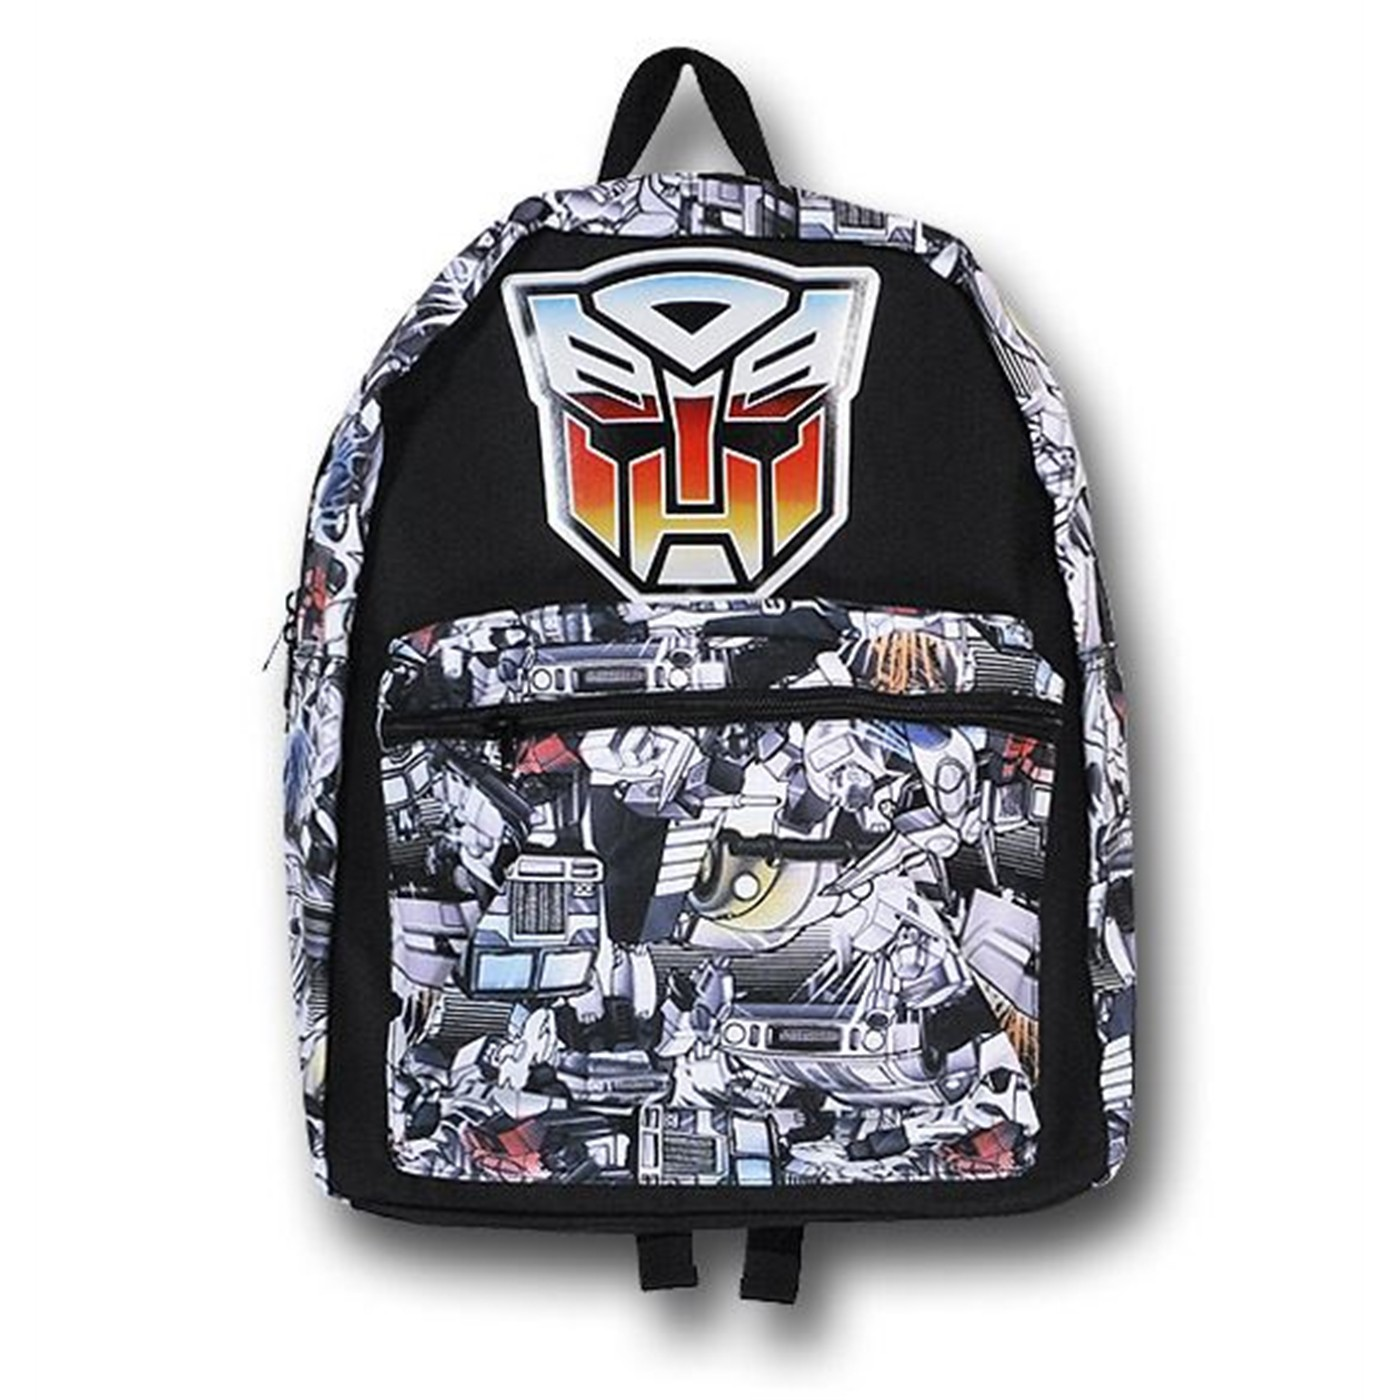 Transformers Autobot Collage and Symbol Backpack